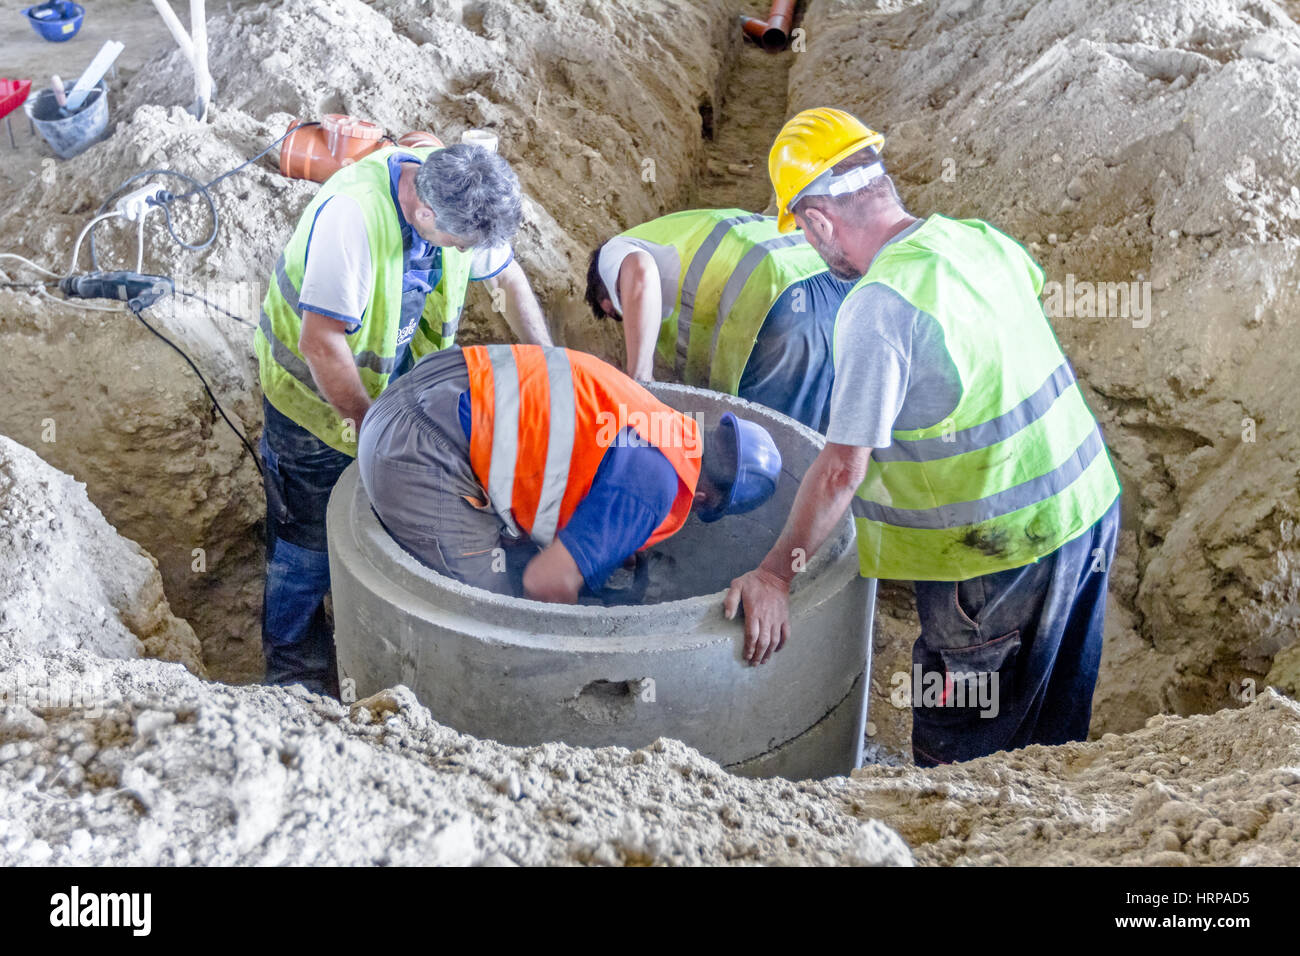 Work is in progress. Construction workers are assembly new concrete manhole on building site. - Stock Image